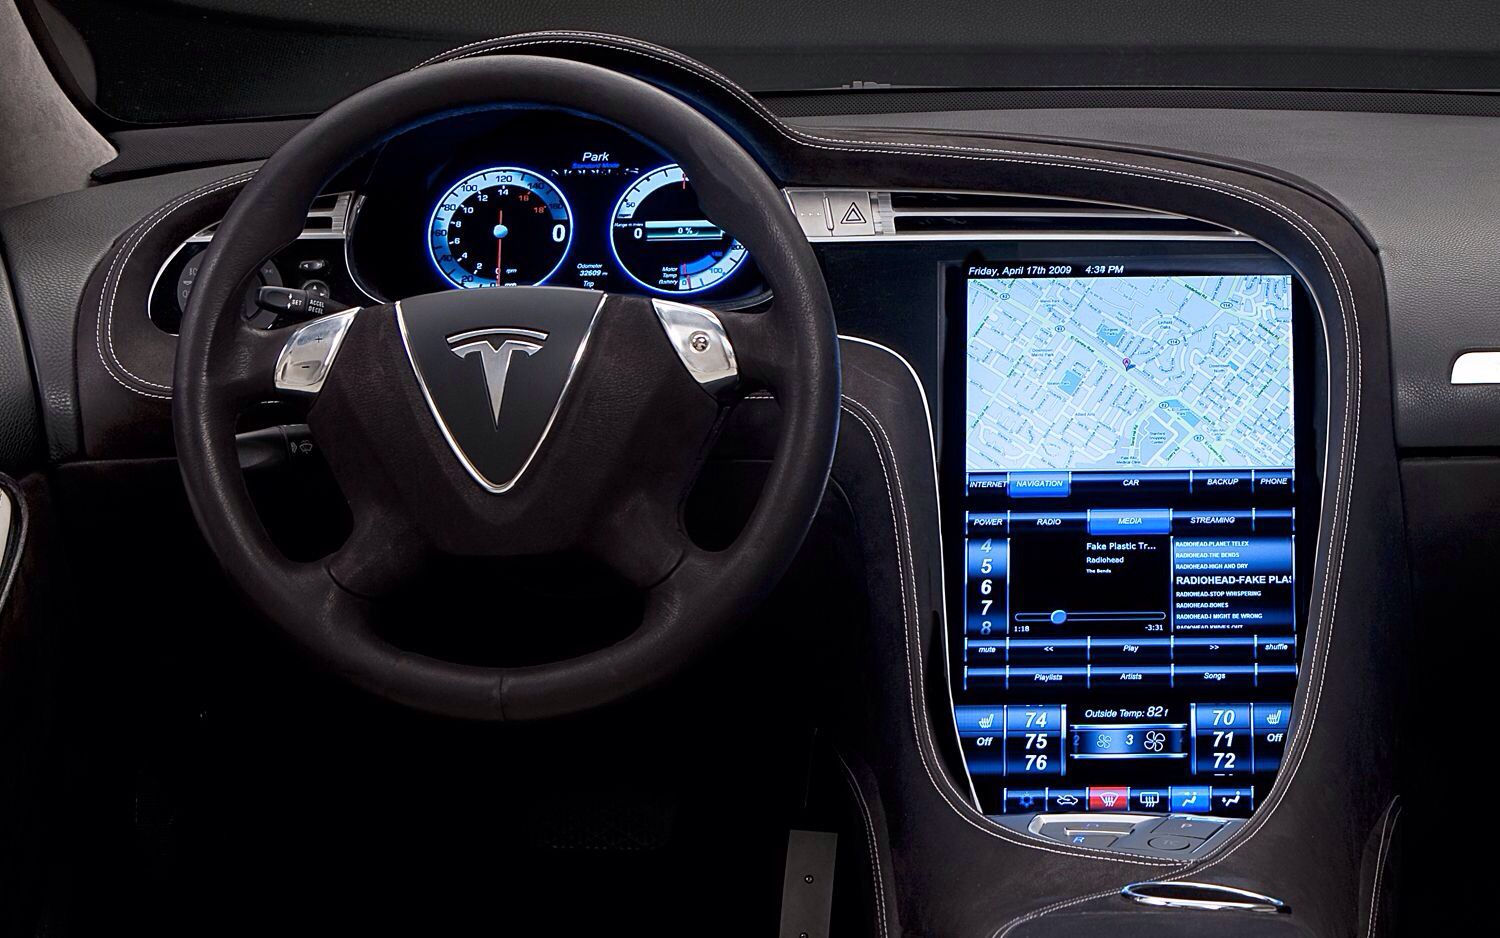 Yes This Is The Dashboard Of This Car Insane Tesla Model S Tesla Motors Model S Tesla Model